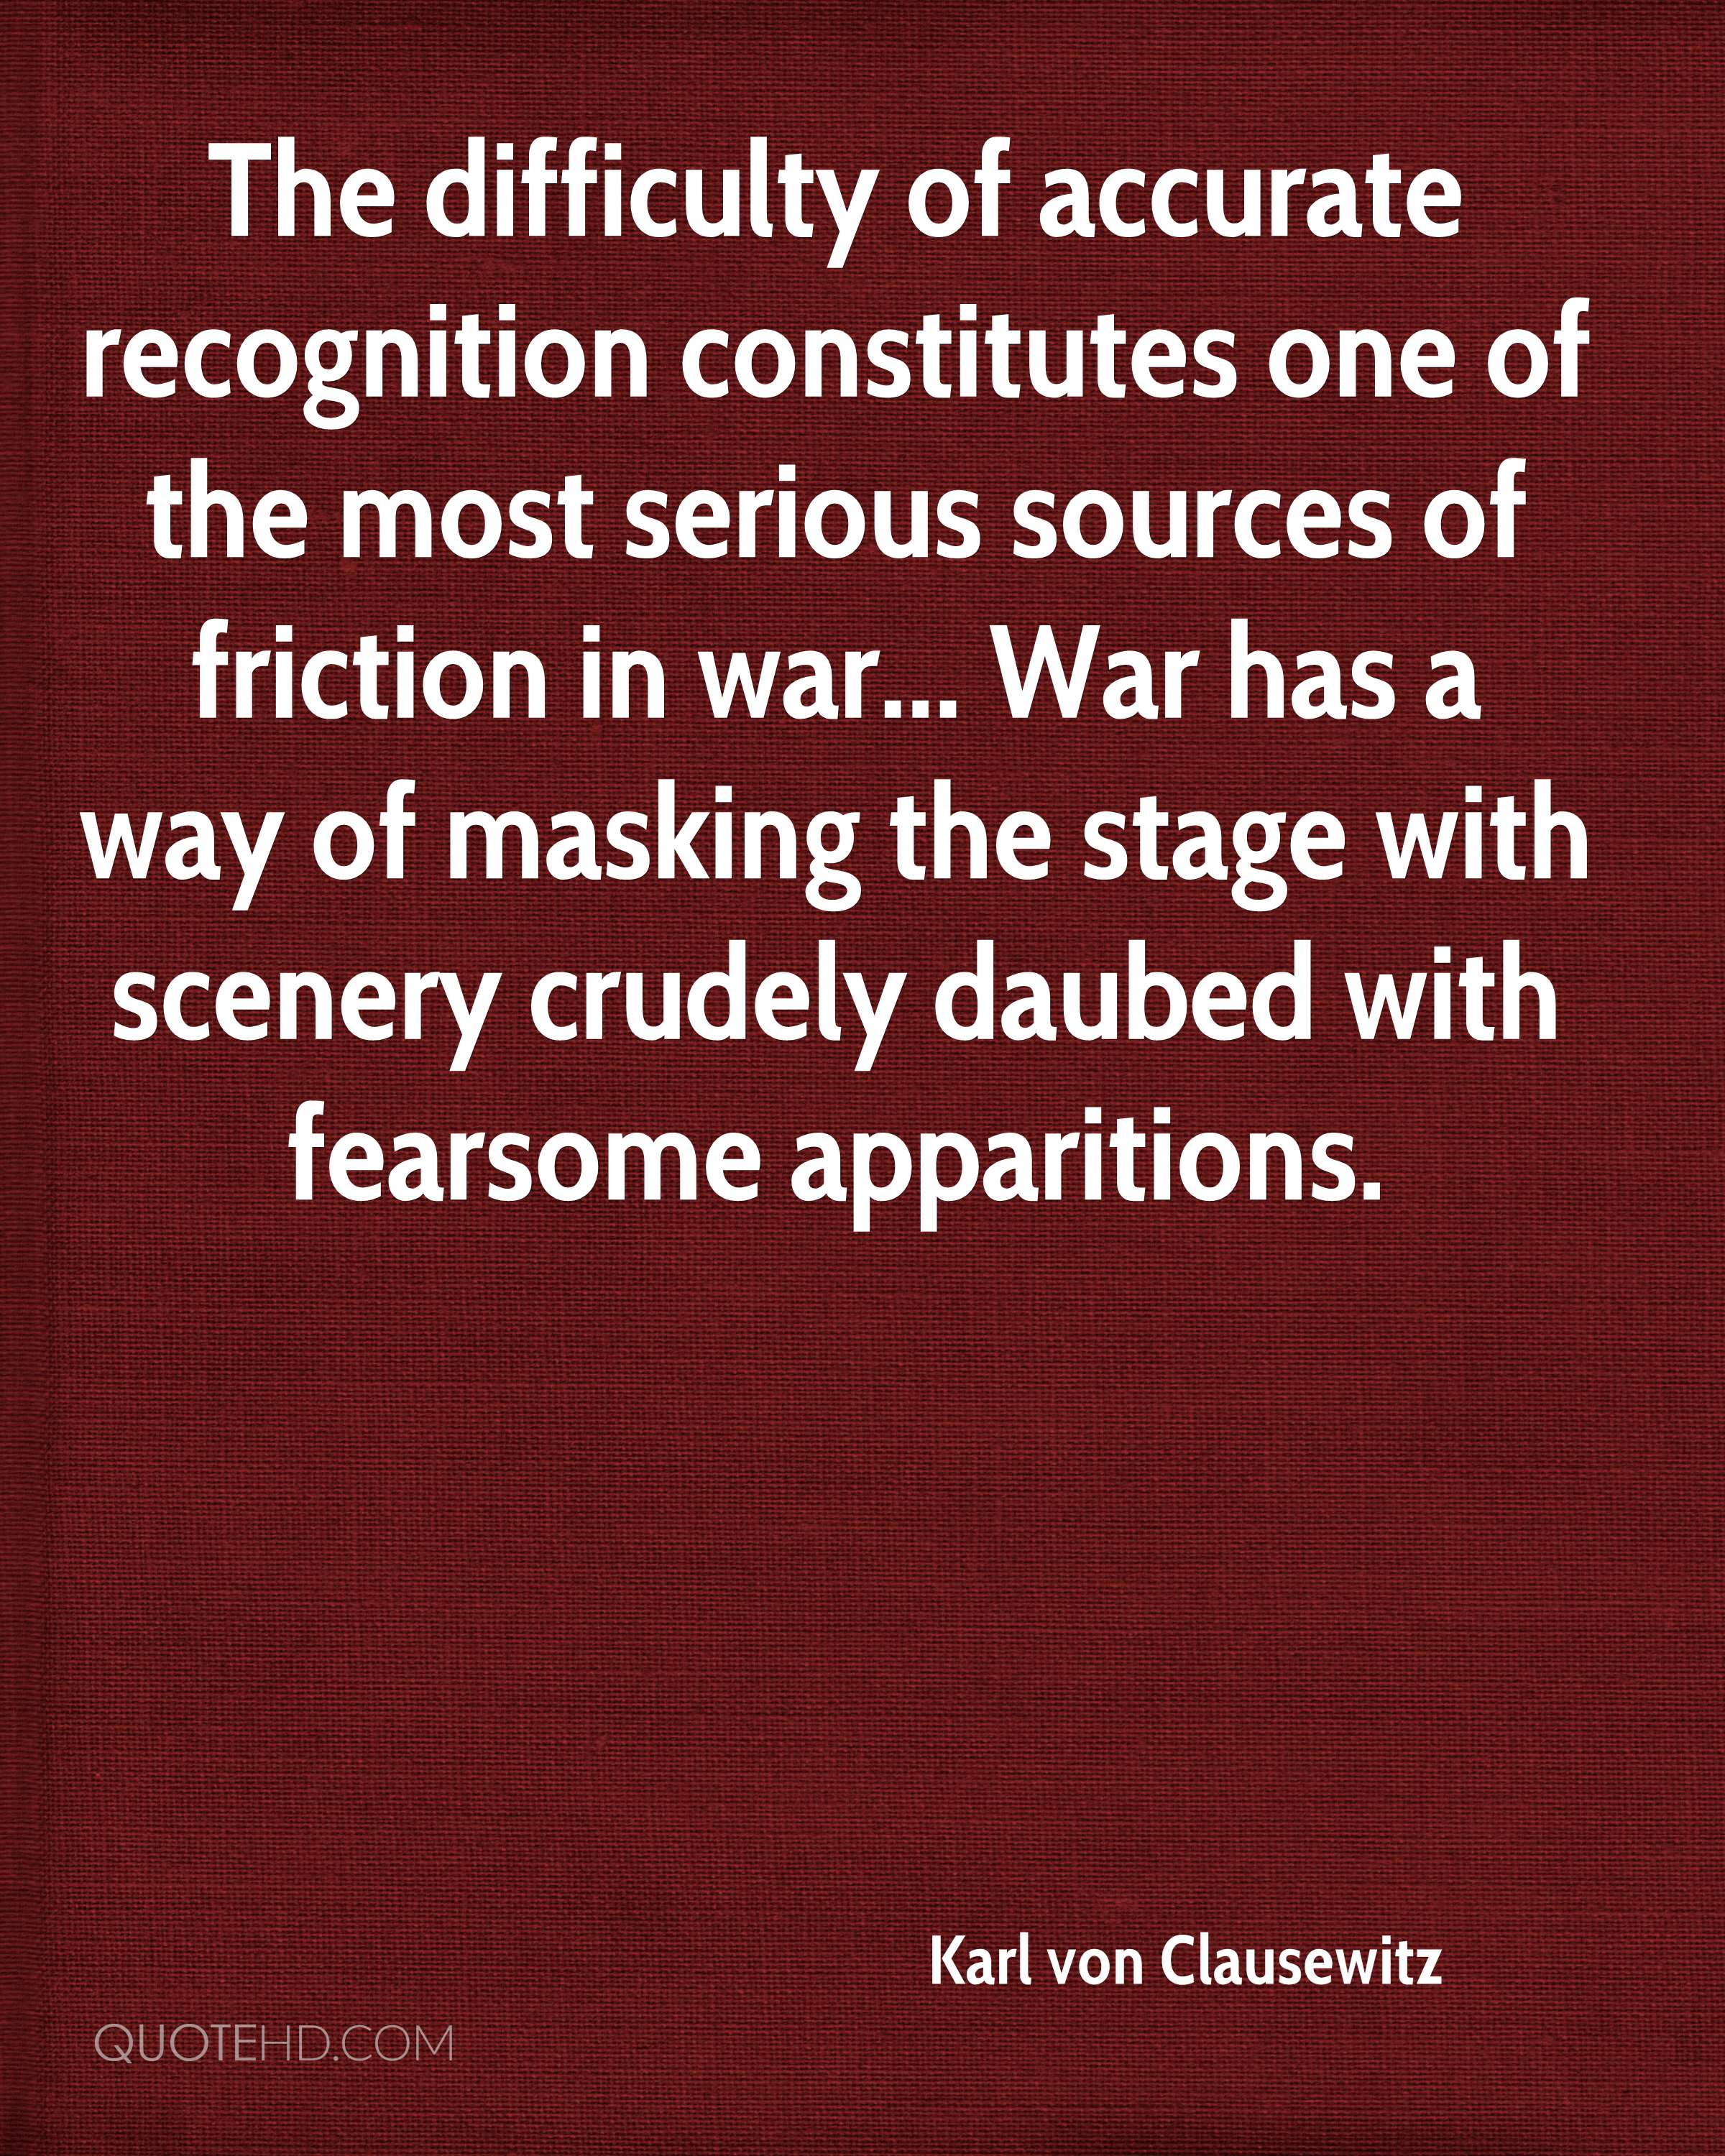 The difficulty of accurate recognition constitutes one of the most serious sources of friction in war... War has a way of masking the stage with scenery crudely daubed with fearsome apparitions.